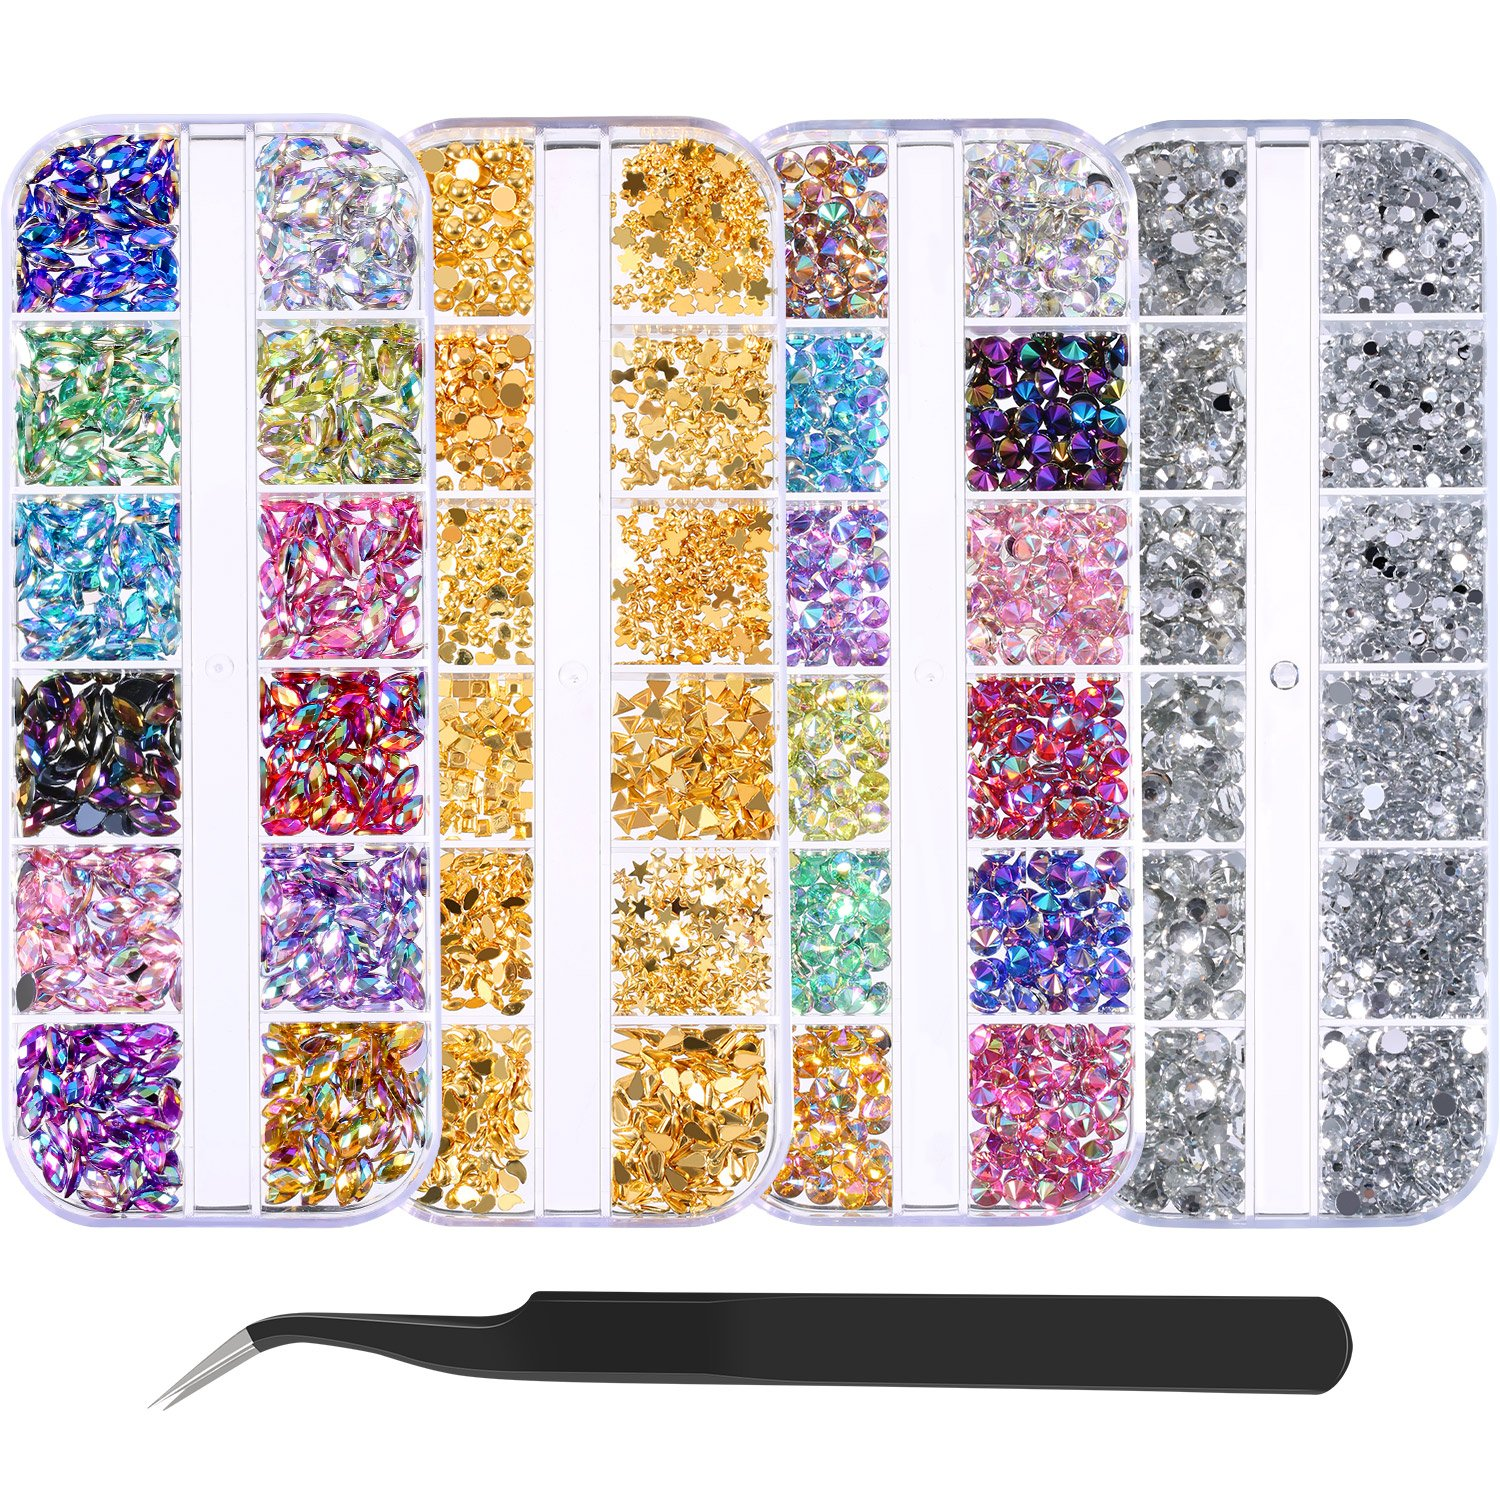 Bememo 4300 Pieces (4 Boxes) Nail Art Rhinestones Kit Nail Rhinestones with 1 Piece 1 Pick up Tweezers, Multicolor Nail Studs Horse Eye Rhinestones for Nail Art Decorations Supplies